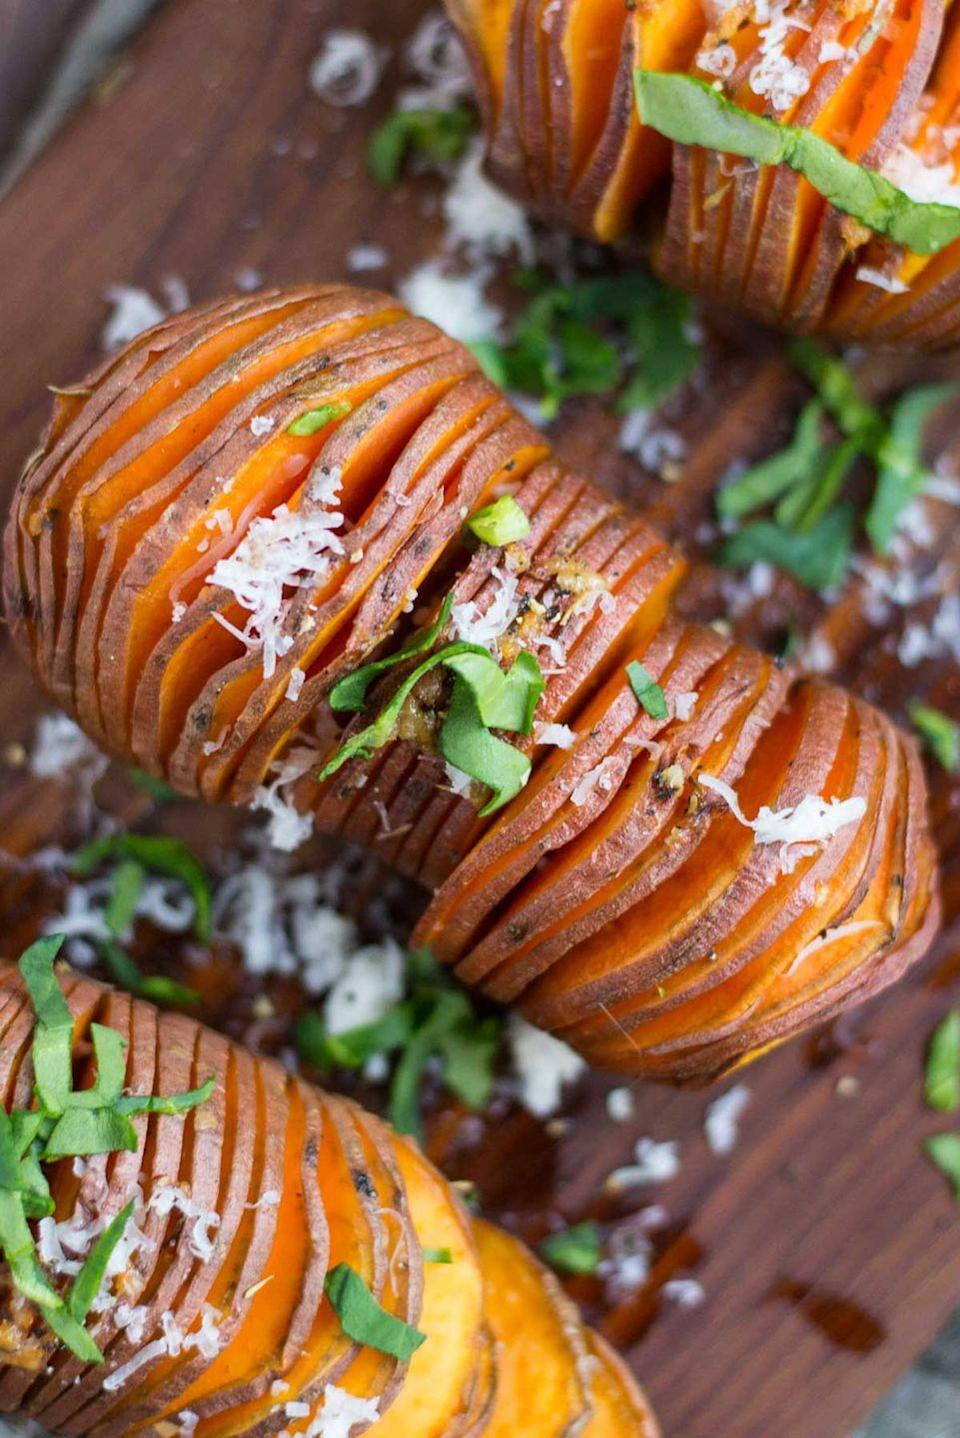 """<p>Cinnamon and nutmeg bring out the sweetness of the potatoes while basil and garlic add a savory bite.</p><p><strong>Get the recipe at <a href=""""https://simplerootswellness.com/detox-hasselback-sweet-potatoes/"""" rel=""""nofollow noopener"""" target=""""_blank"""" data-ylk=""""slk:Simple Roots Wellness"""" class=""""link rapid-noclick-resp"""">Simple Roots Wellness</a>.</strong></p><p><strong><strong><a class=""""link rapid-noclick-resp"""" href=""""https://www.amazon.com/Nordic-Ware-Natural-Aluminum-Commercial/dp/B0049C2S32/?tag=syn-yahoo-20&ascsubtag=%5Bartid%7C10050.g.877%5Bsrc%7Cyahoo-us"""" rel=""""nofollow noopener"""" target=""""_blank"""" data-ylk=""""slk:SHOP BAKING SHEETS"""">SHOP BAKING SHEETS</a></strong><br></strong></p>"""